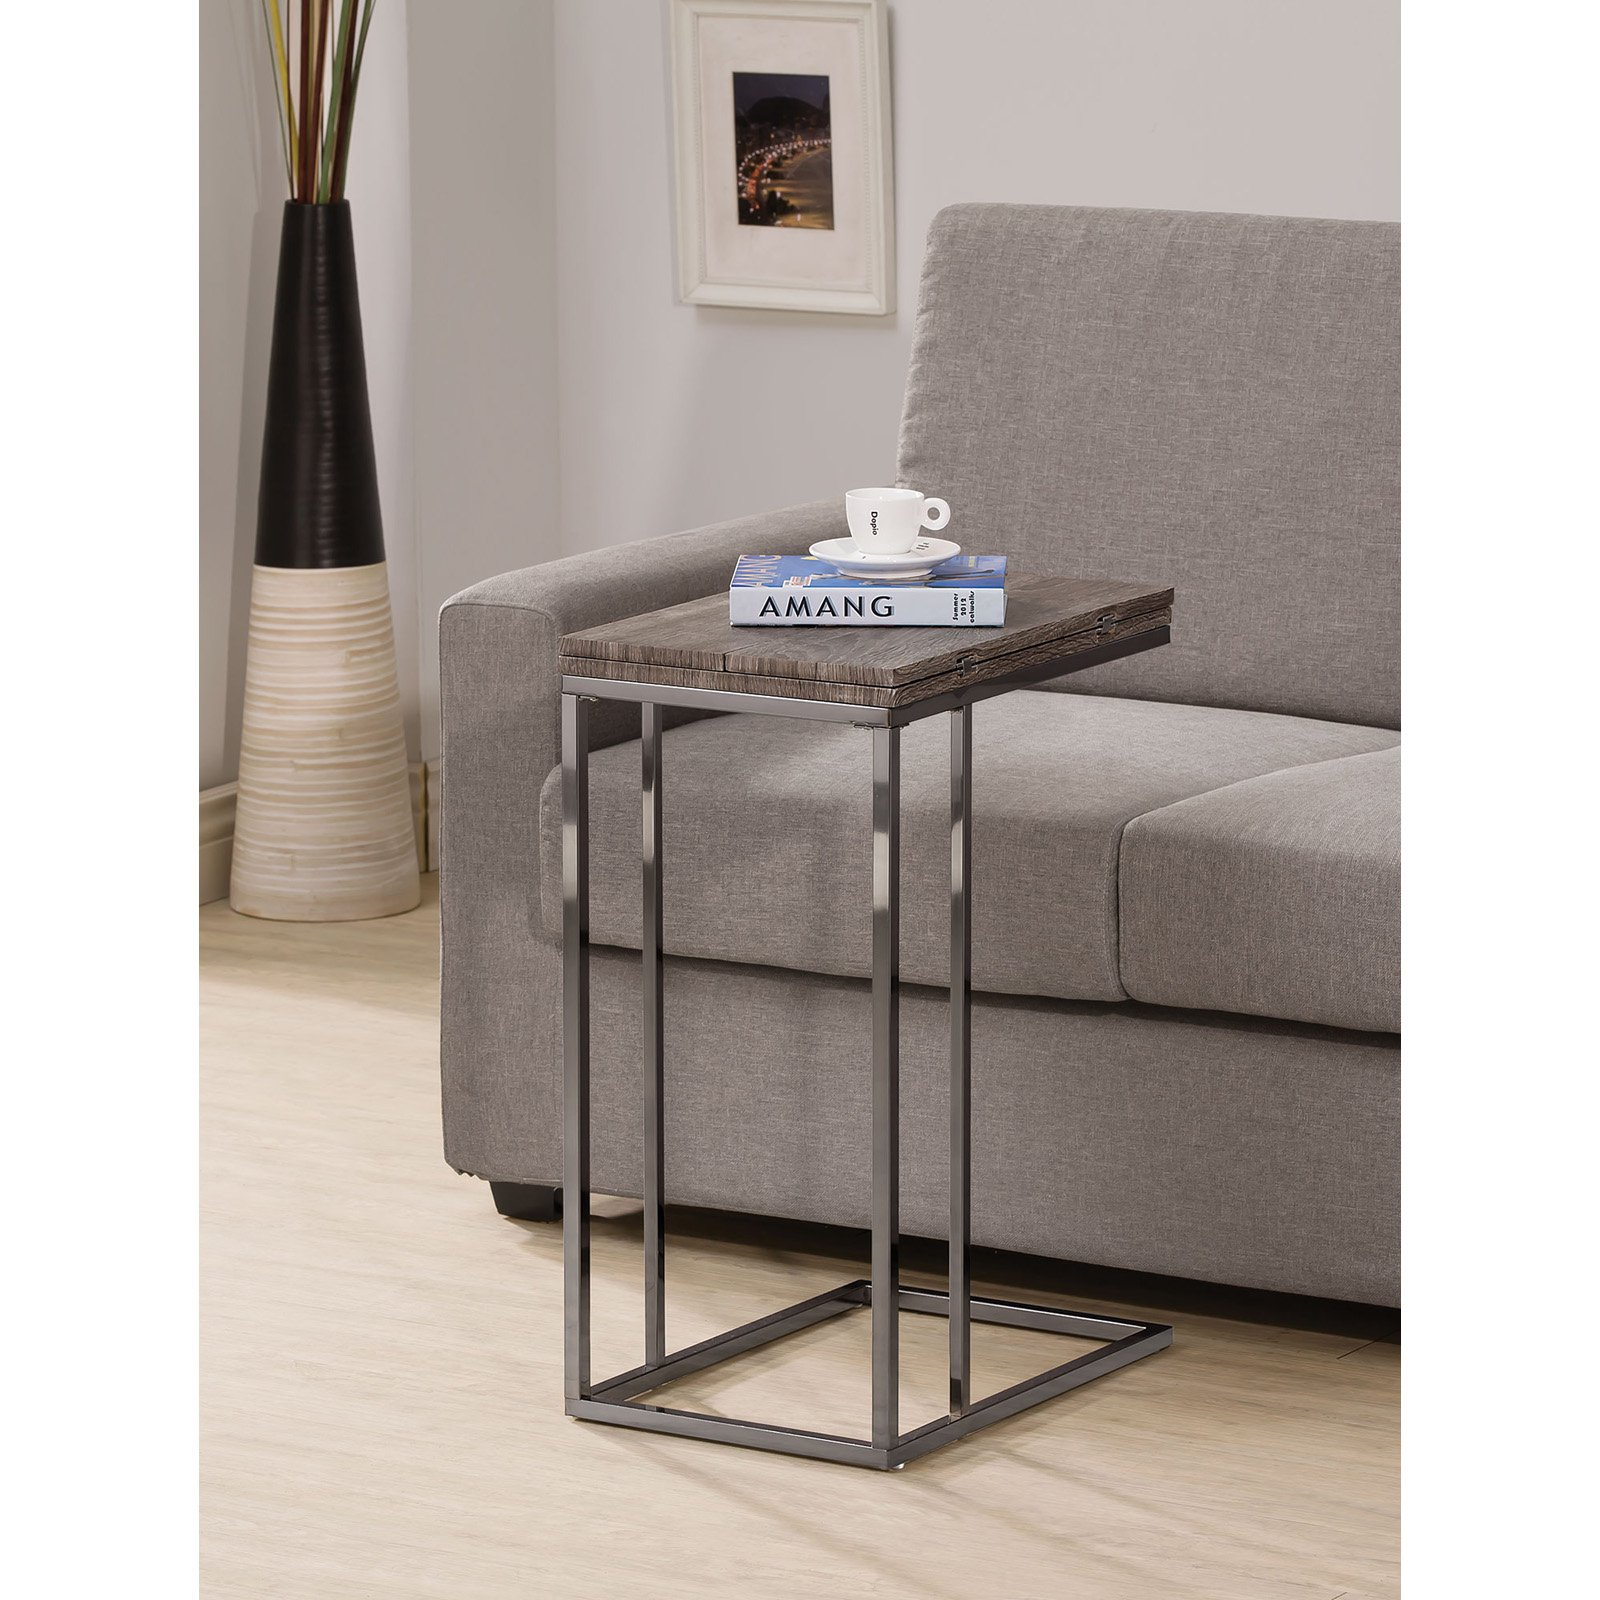 coaster furniture weathered grey flip top end table living room accent snack with glass semi circle unique kitchen islands for foyers drum box seat metal patio coffee oval and